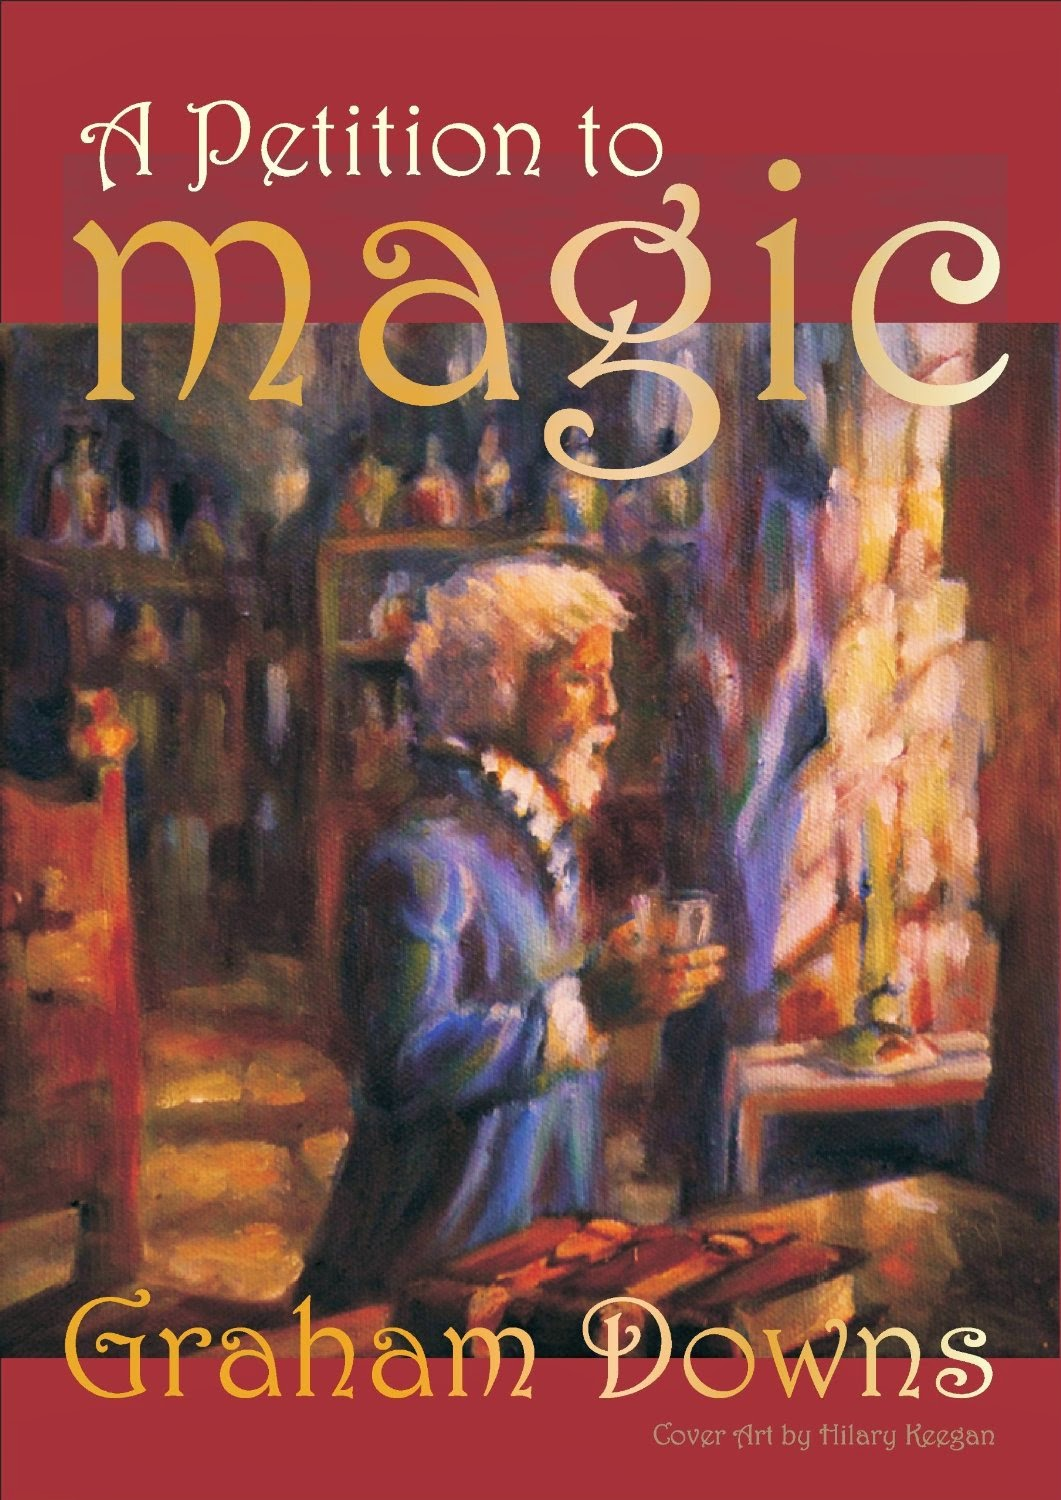 http://www.amazon.com/Petition-Magic-Graham-Downs-ebook/dp/B00ASVFXS0/ref=sr_1_1?s=digital-text&ie=UTF8&qid=1393759998&sr=1-1&keywords=a+petition+to+magic